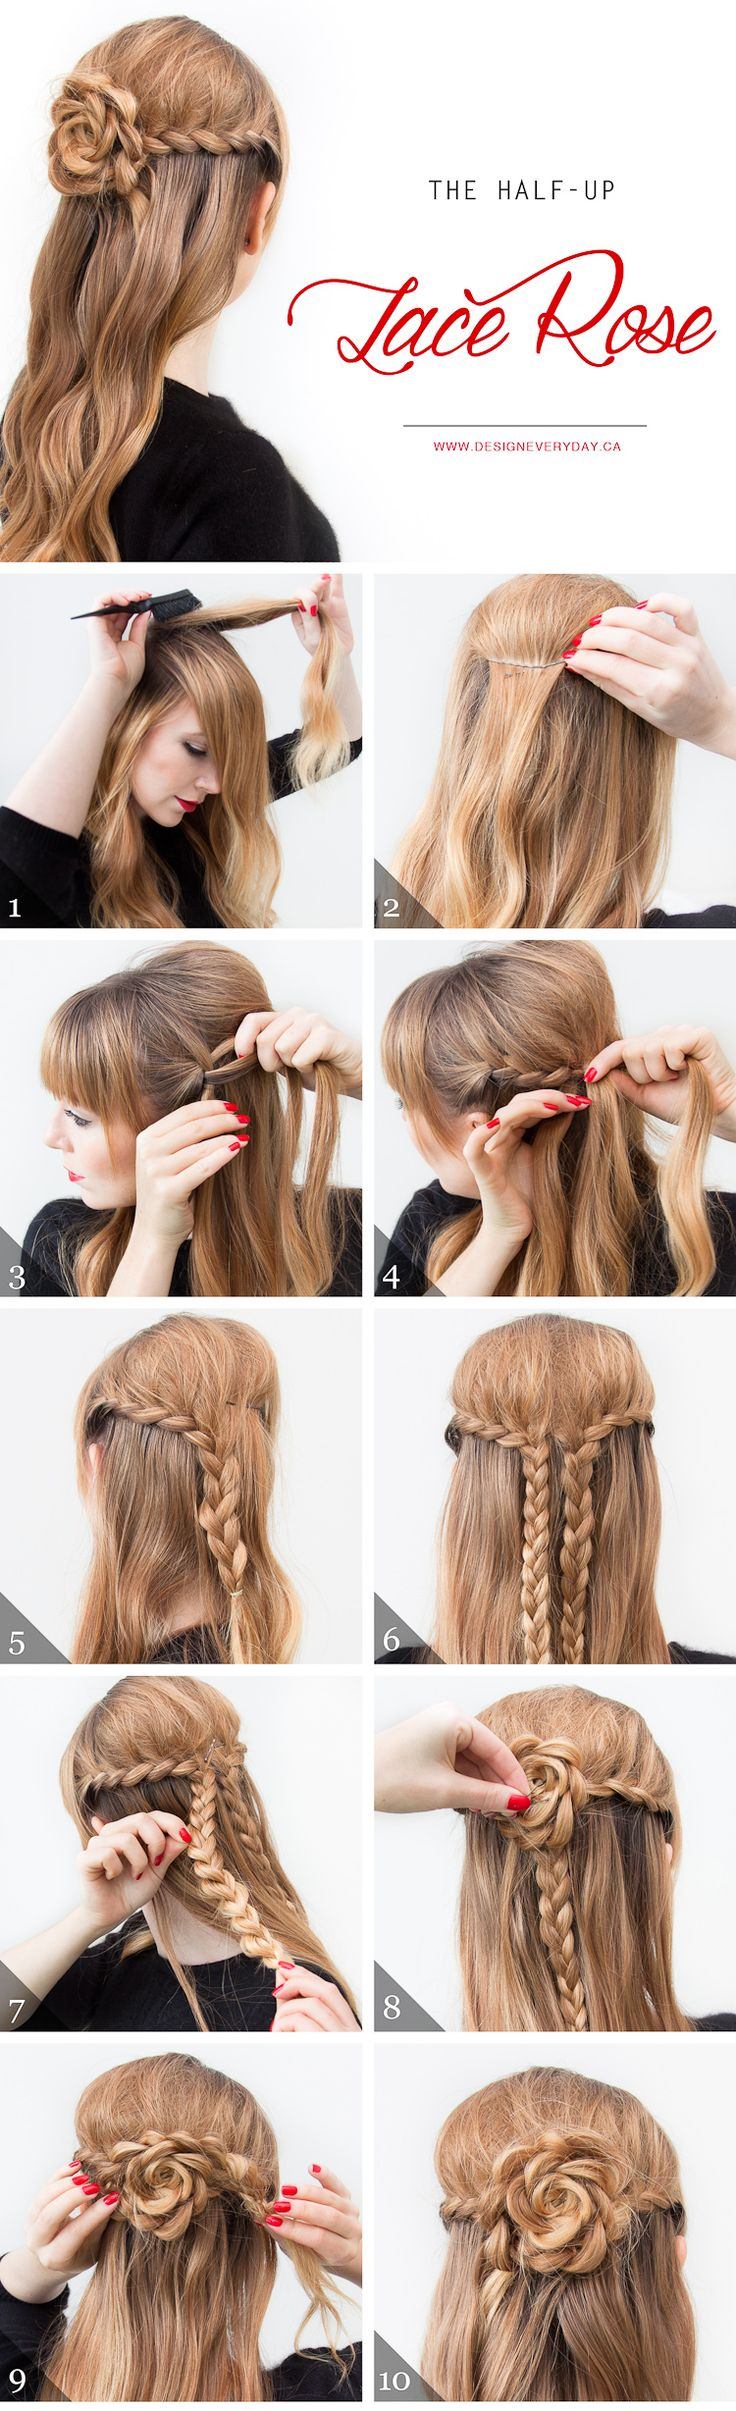 lace braid half-up hair tutorial--MANY styles on this page Learn How To Grow Luscious Long Sexy Hair @ longhairtips.org/ #longhair #longhairstyles #longhairtips